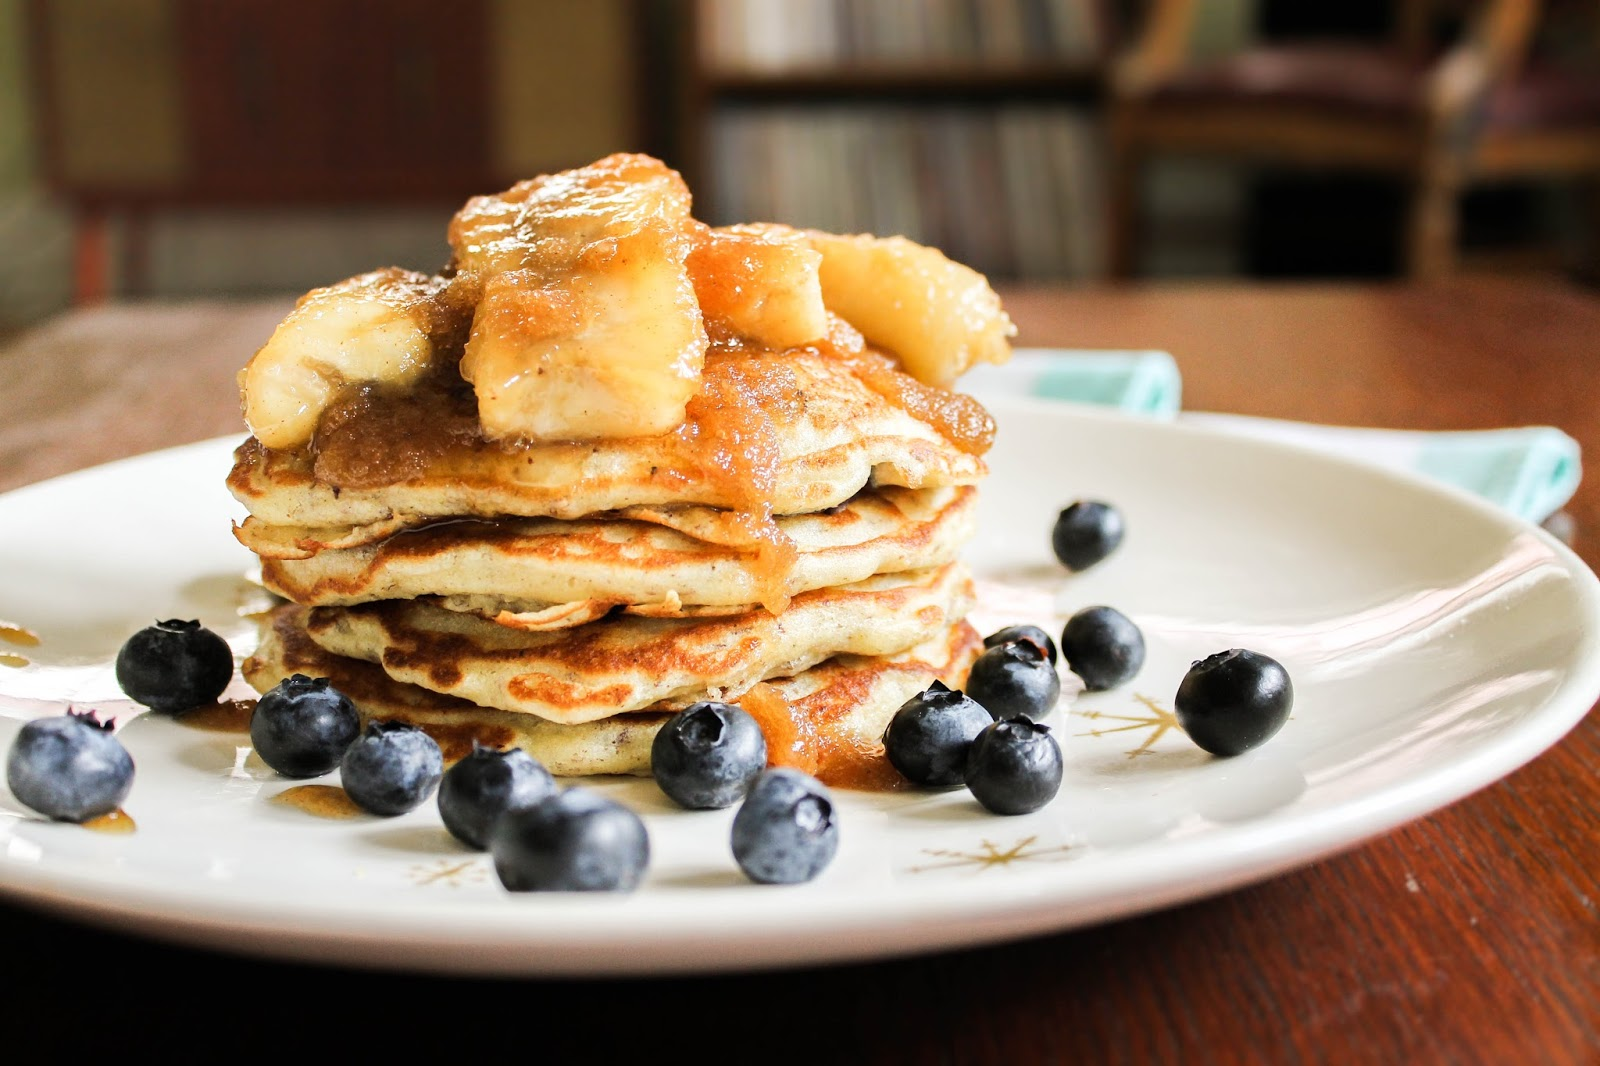 The Quixotic Table: Blueberry Flax Pancakes with Caramelized Bananas